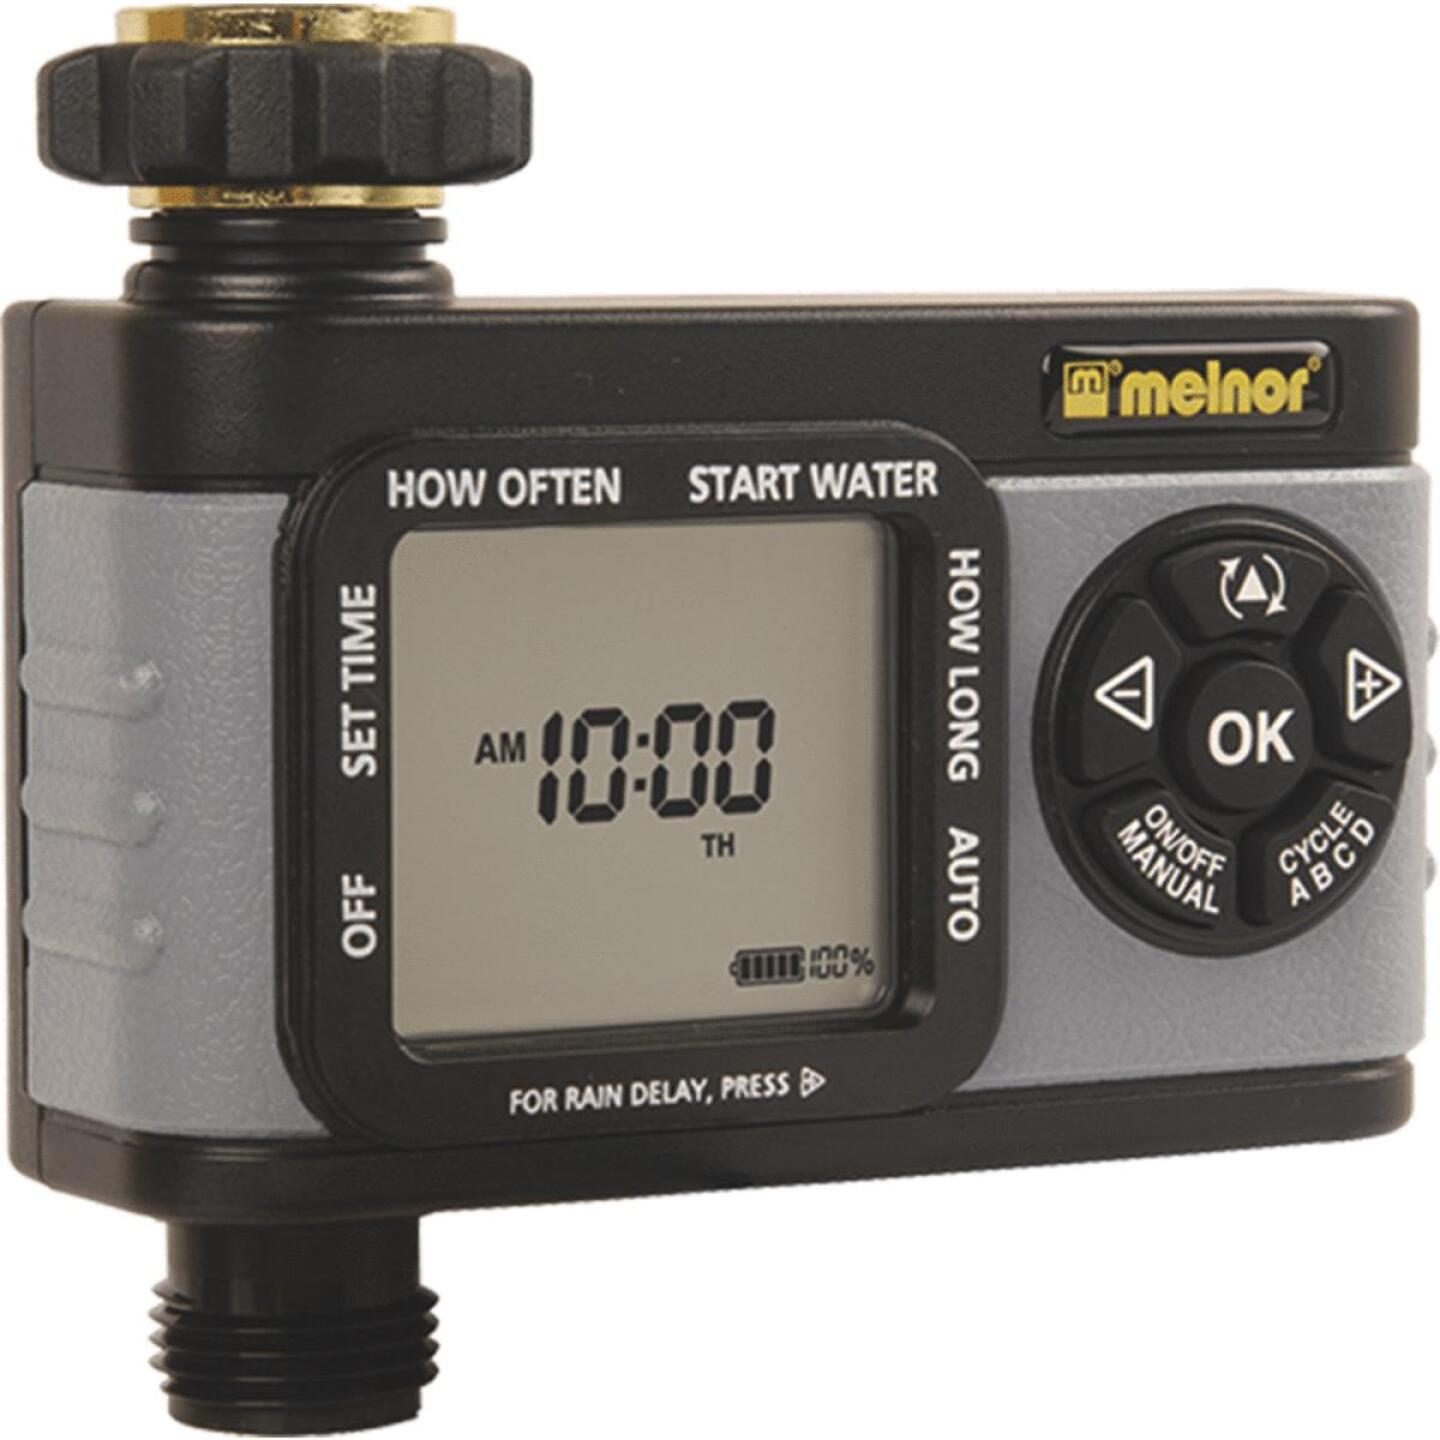 Melnor Hydrologic Digital 1-Zone Water Timer Image 1